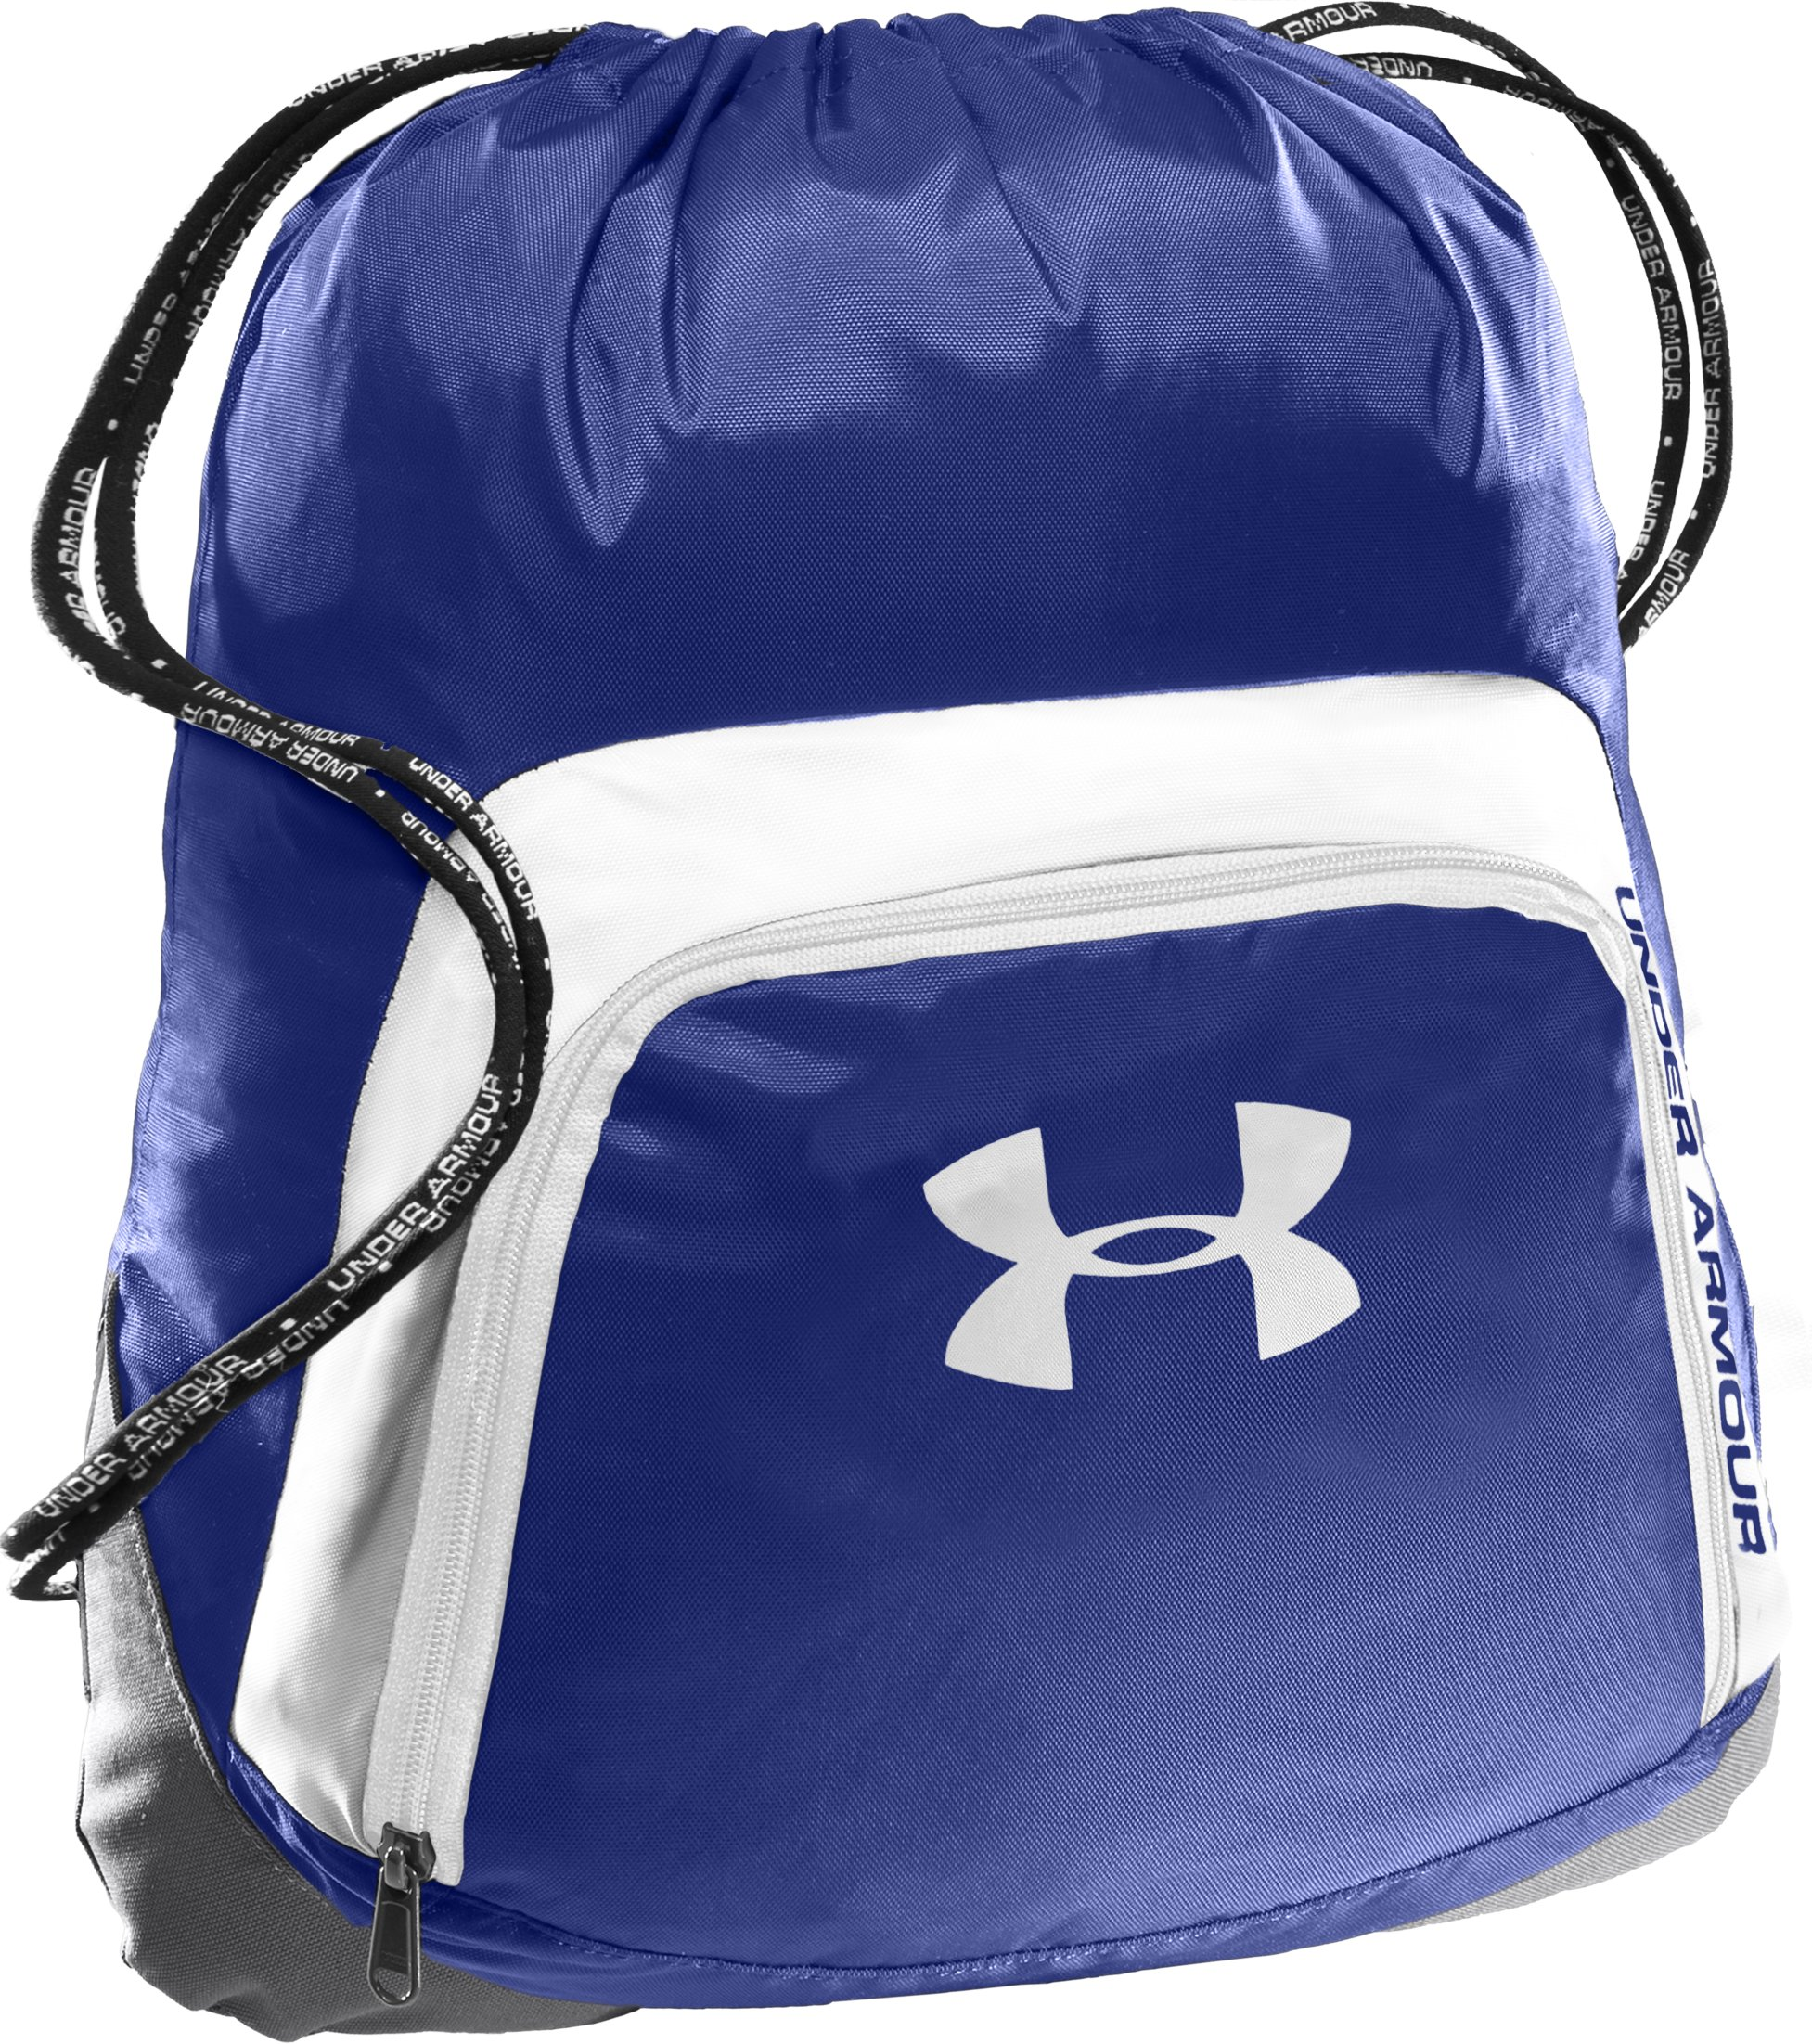 PTH® Victory Sackpack, Royal, zoomed image